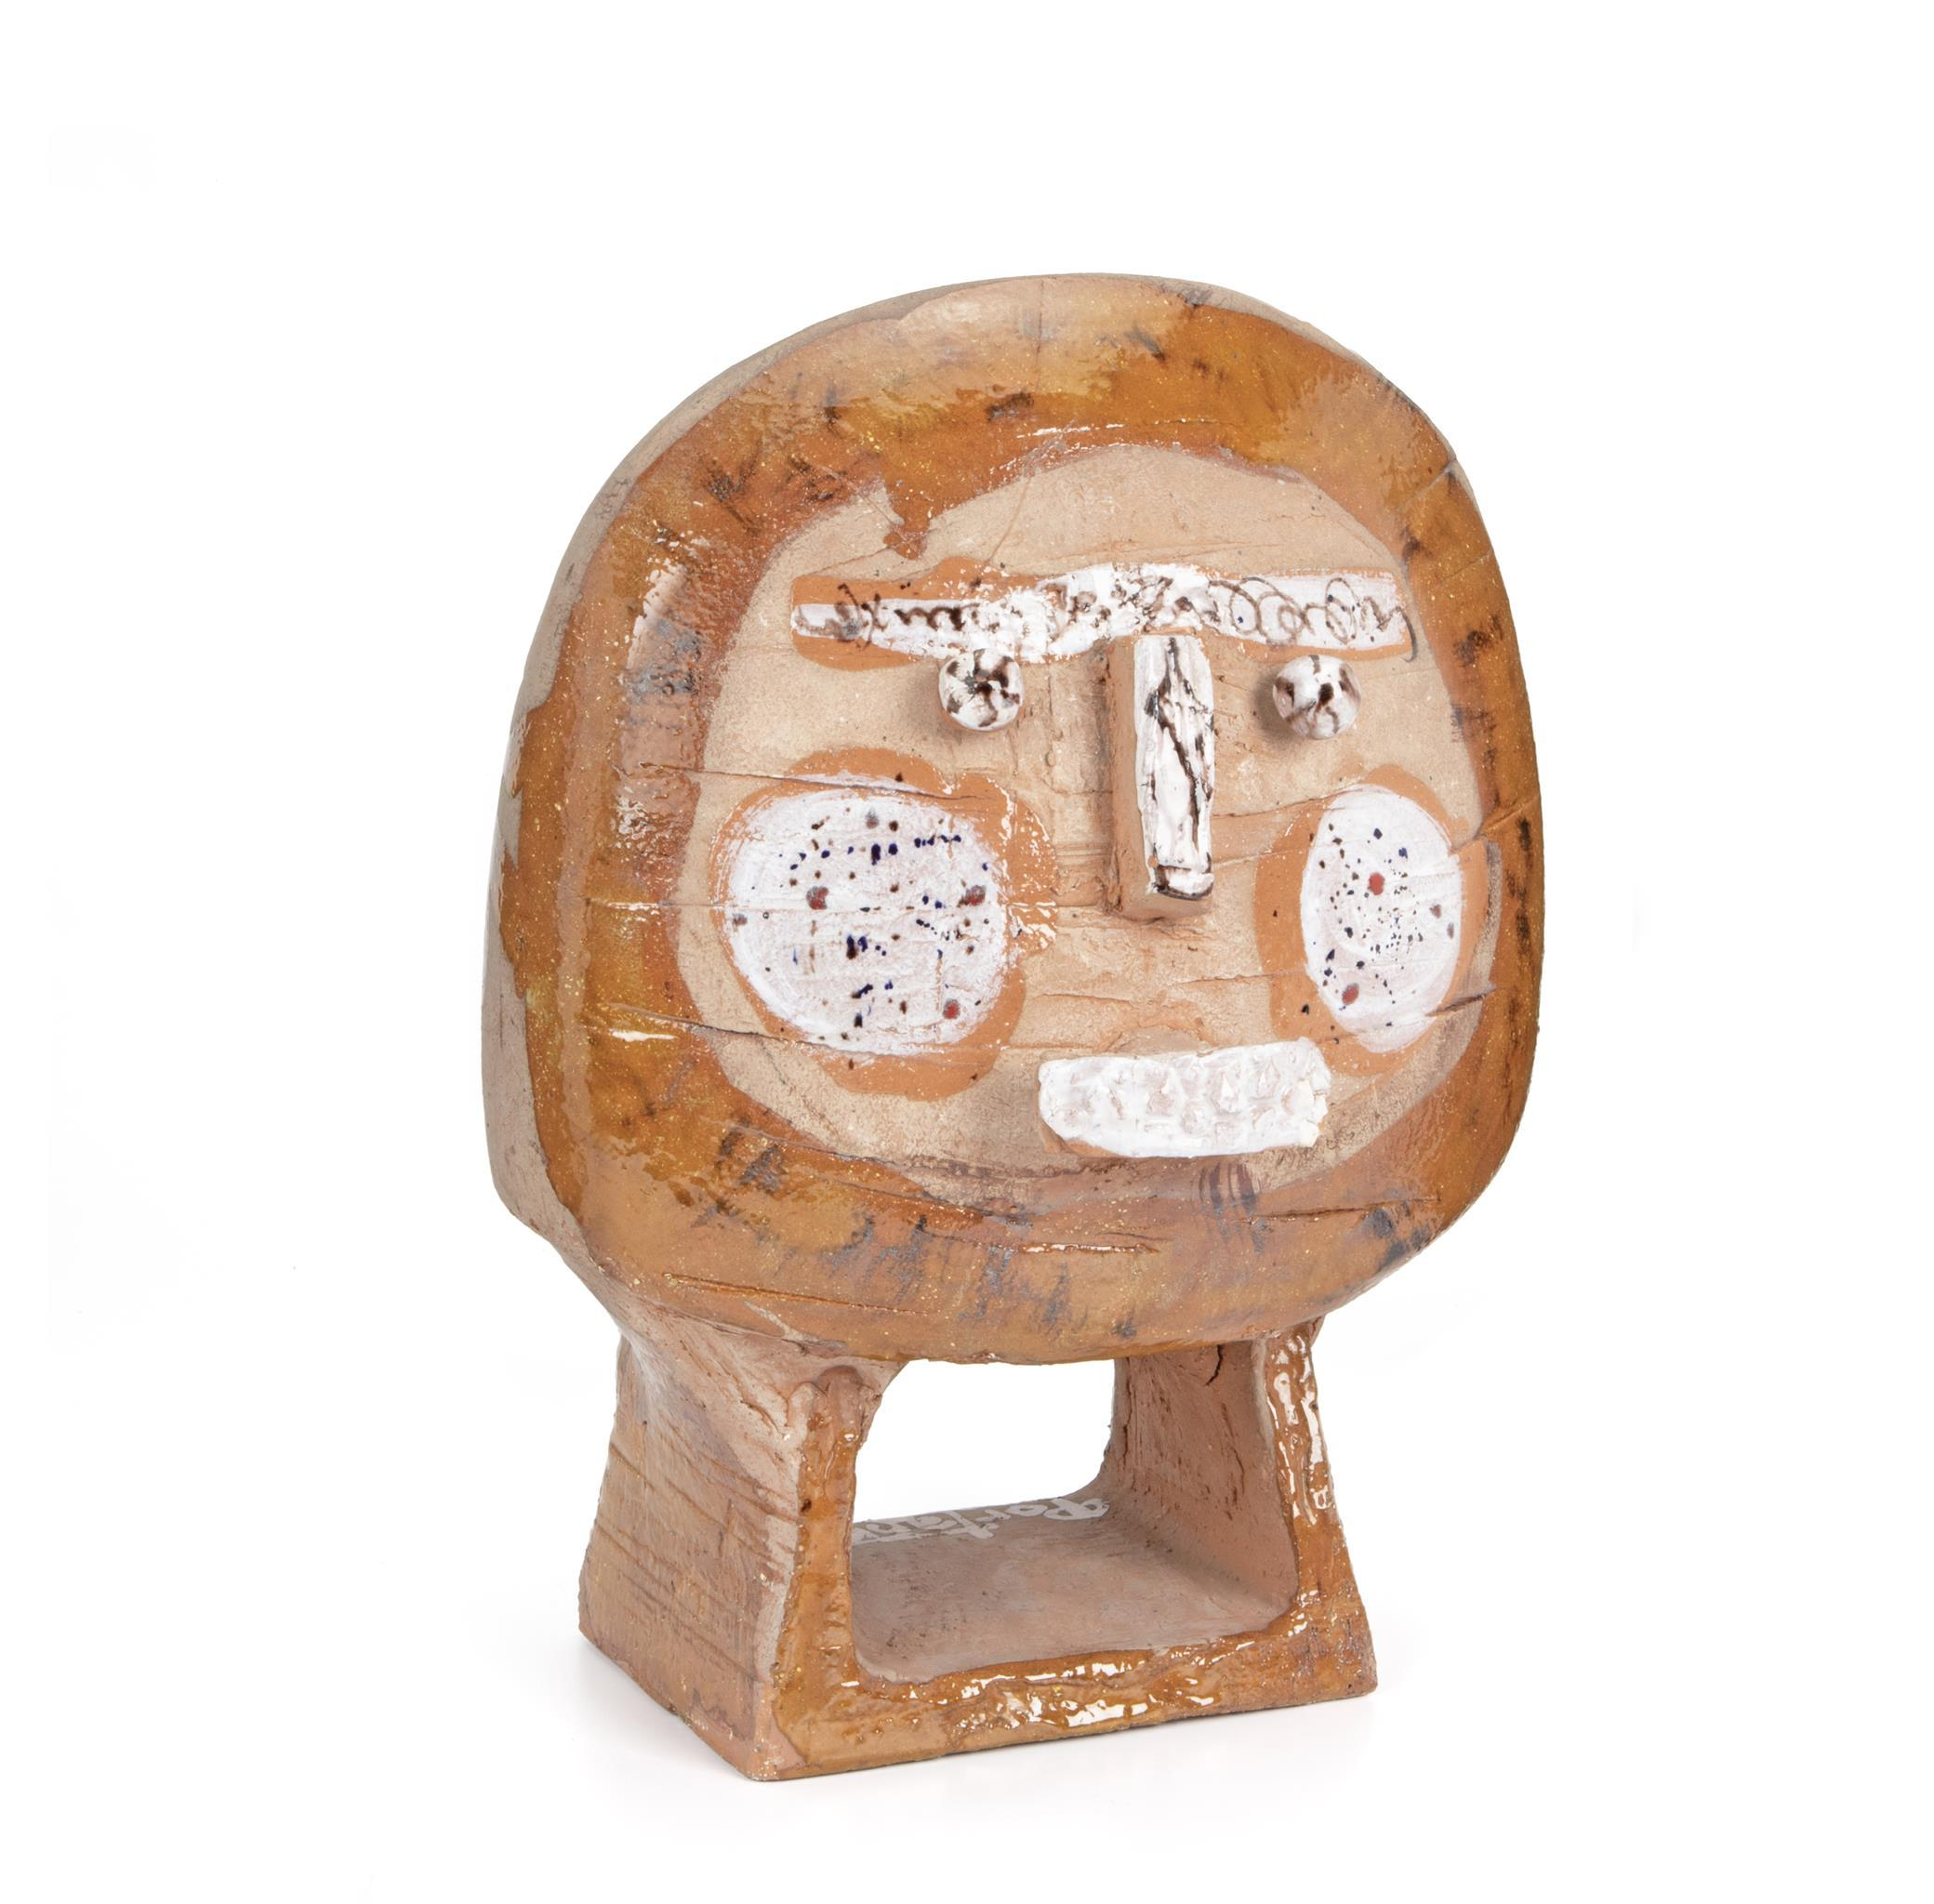 "Gilbert Portanier, (b. 1926, French), Untitled (After Picasso), Terracotta, 14.75"" H x 10.5"" W x 8.25"" D"